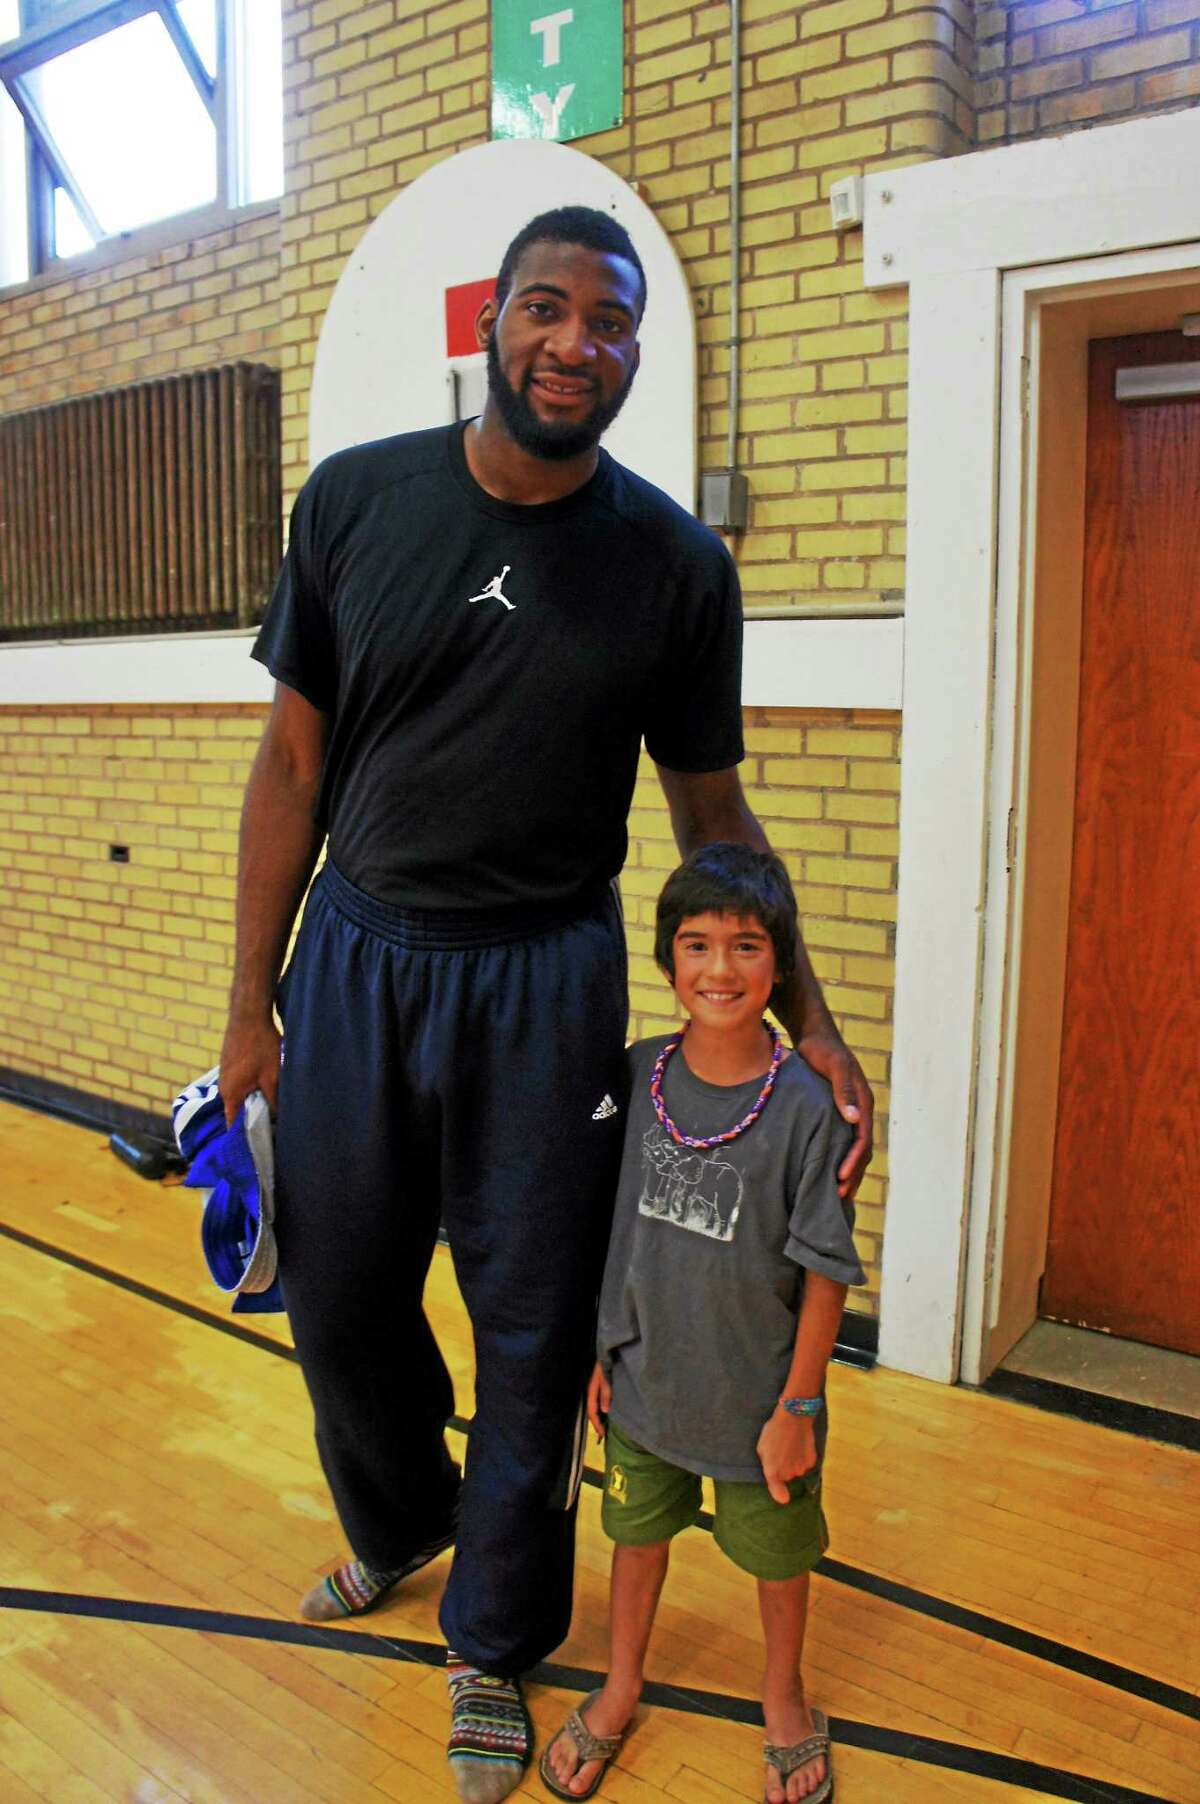 Detroit Pistons player Andrew Drummond visits with one of the Middletown YMCA's younger members during a recent visit to his favorite hometown court.